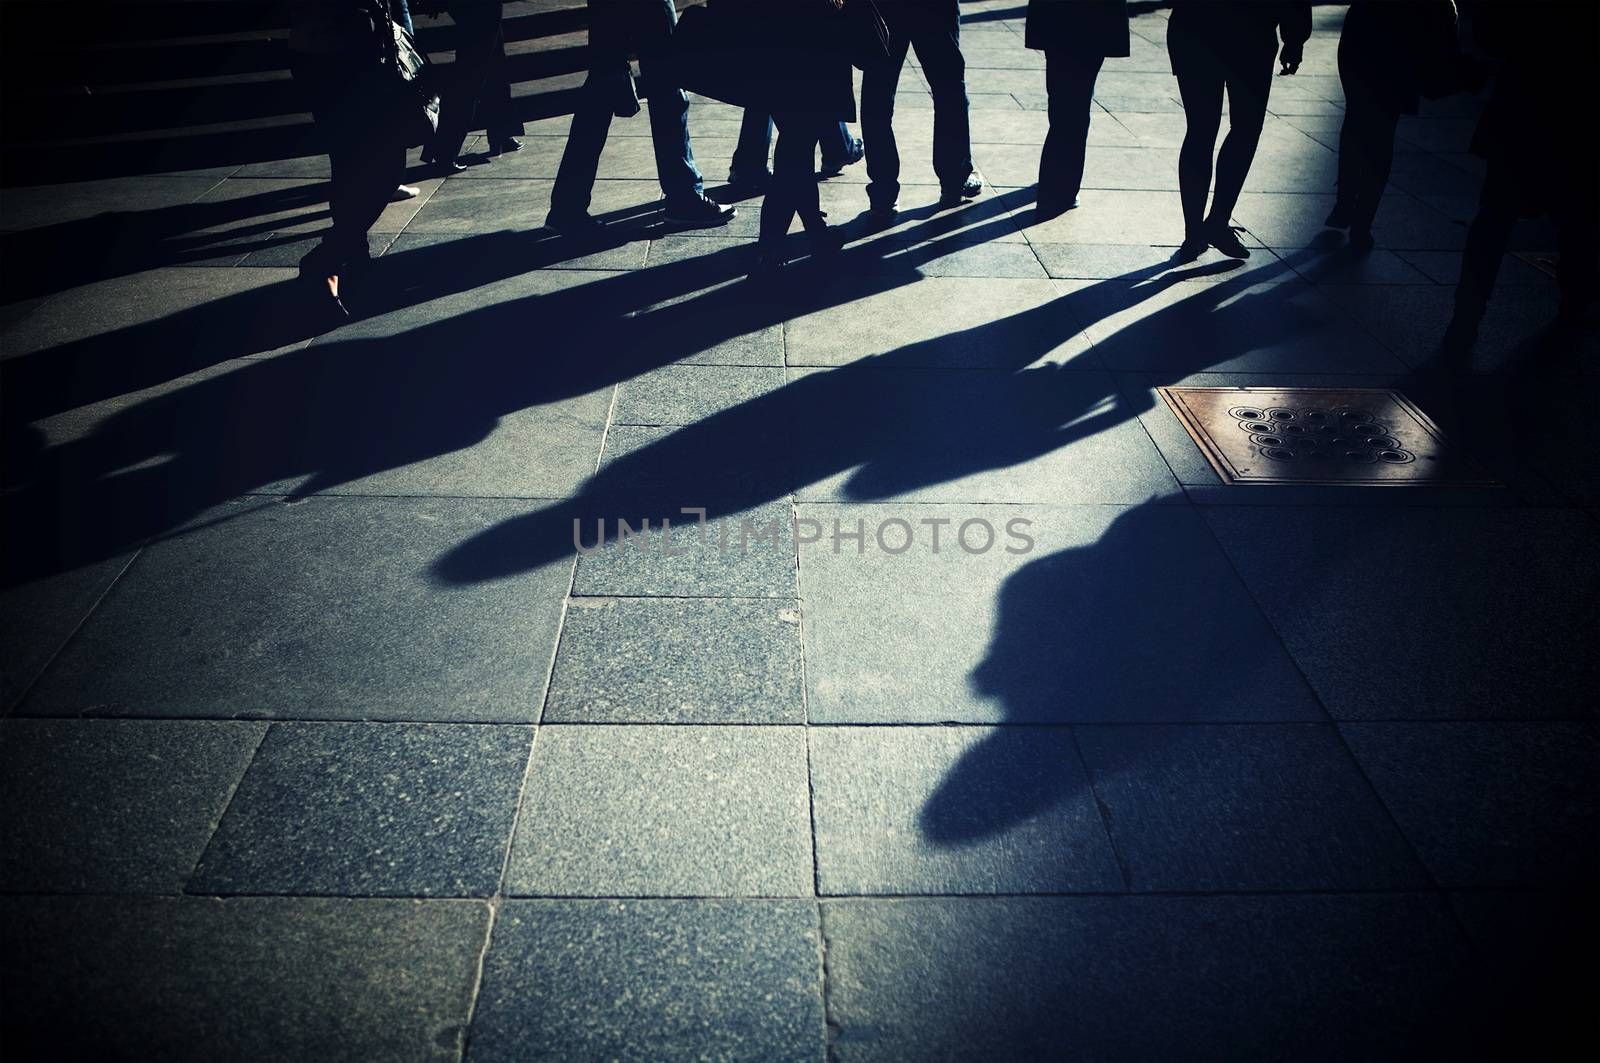 Shadows of people on the pavement. People walking the street.